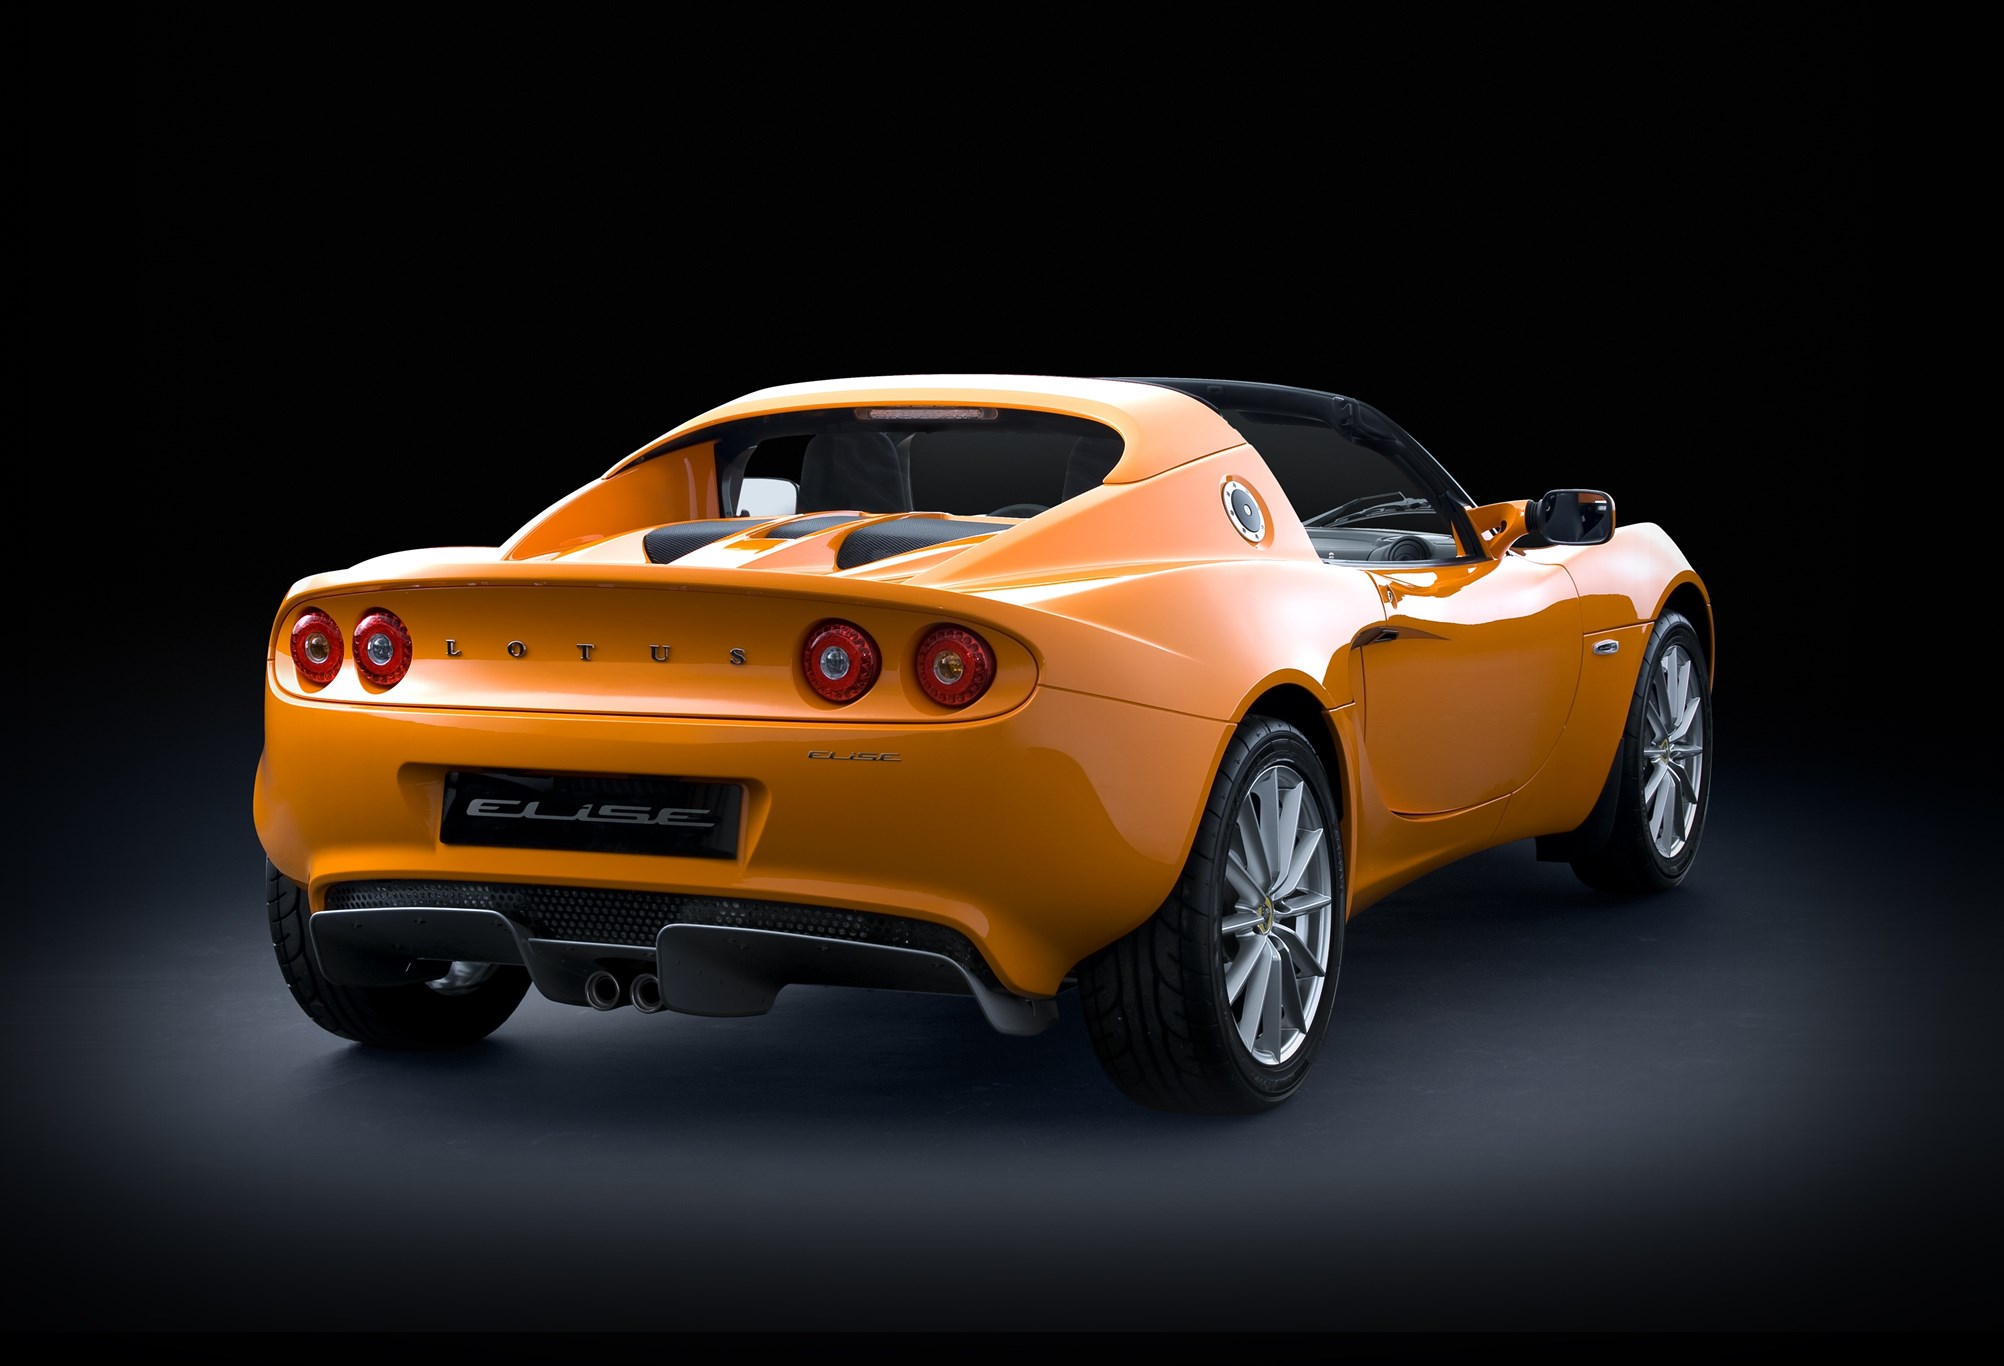 Cars For Sale Uk Norfolk: Lotus Cars Bought By Geely